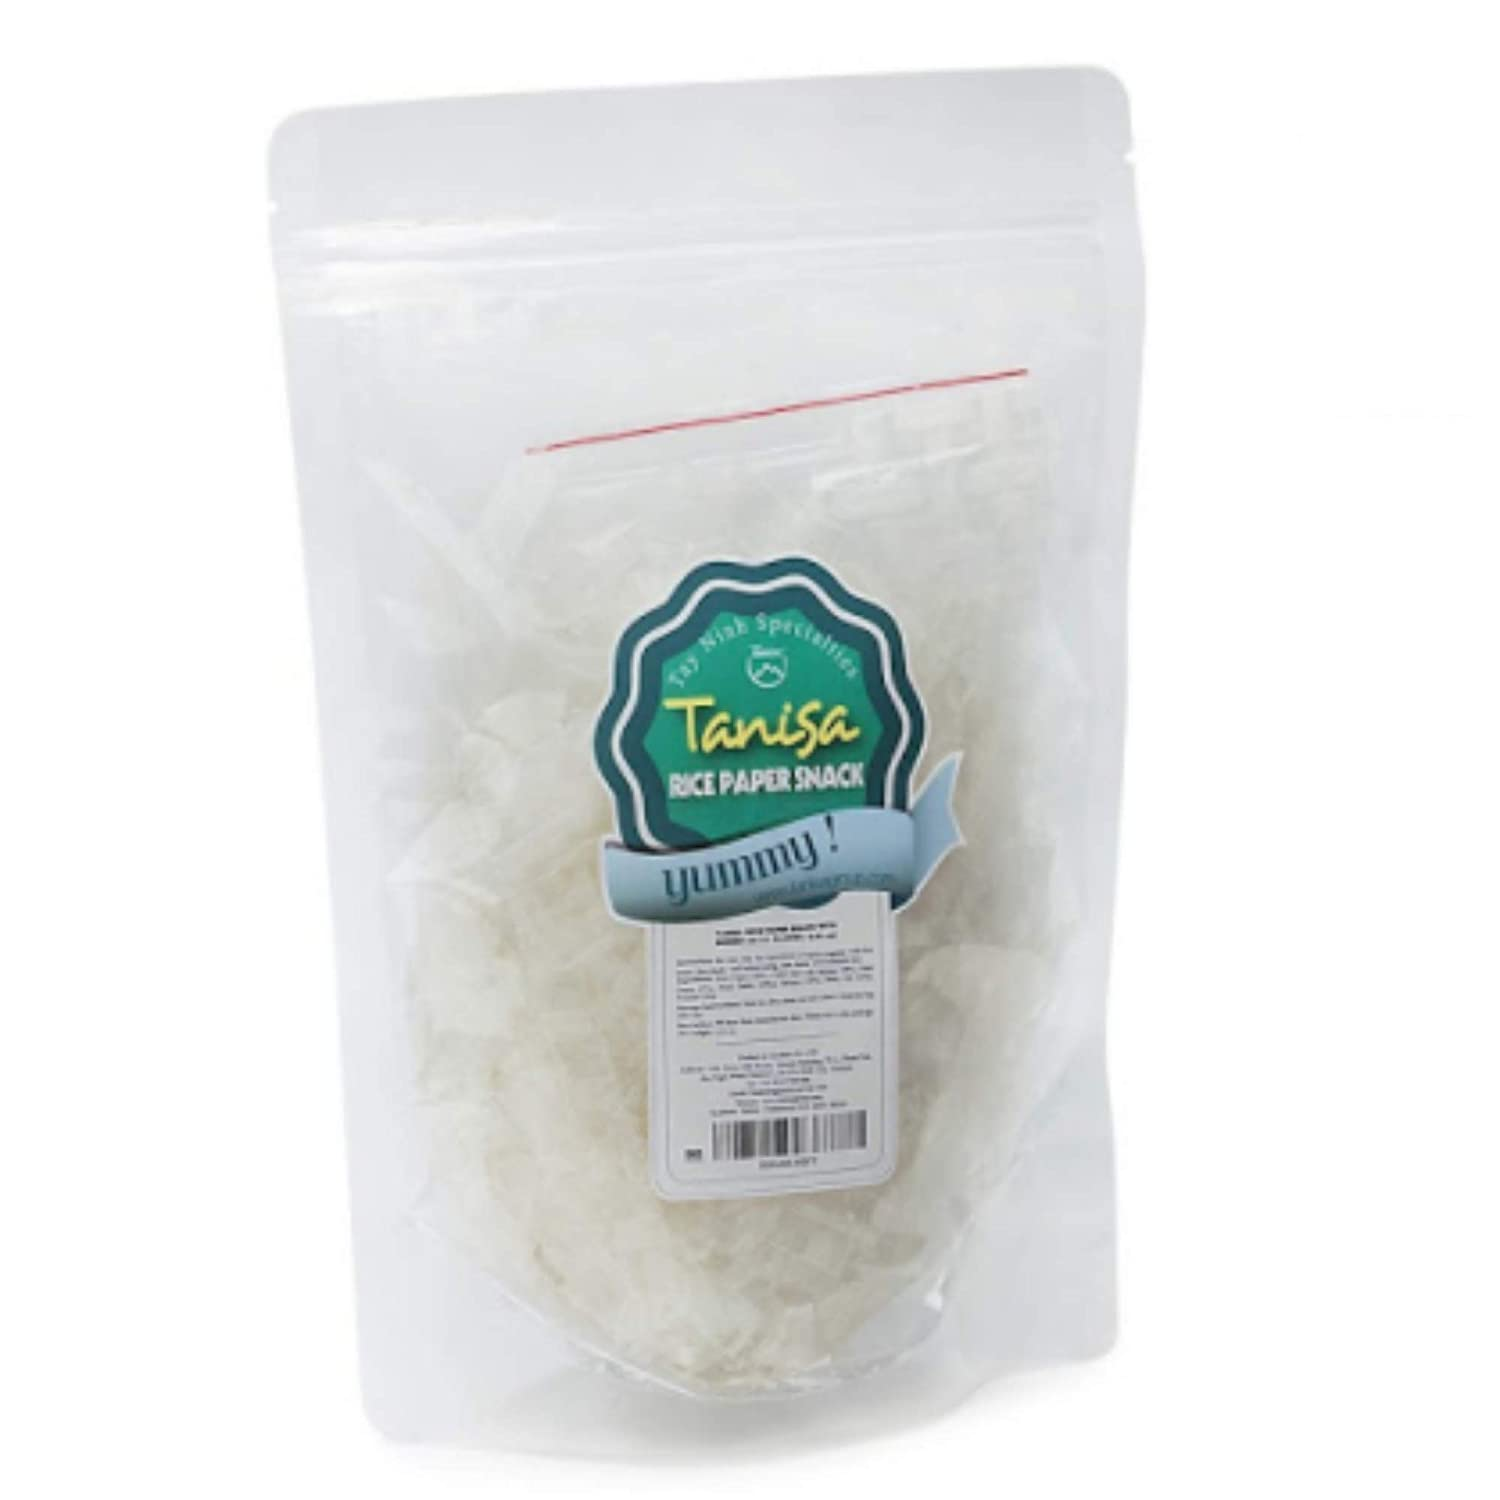 Rice paper snacks from TANISA, ingredients to mix rice papers salad, DIY mixture of rice paper fibers with seasonings - Vietnamese famous street food - Banh trang tron (Pure pack, 1 pack-80g)